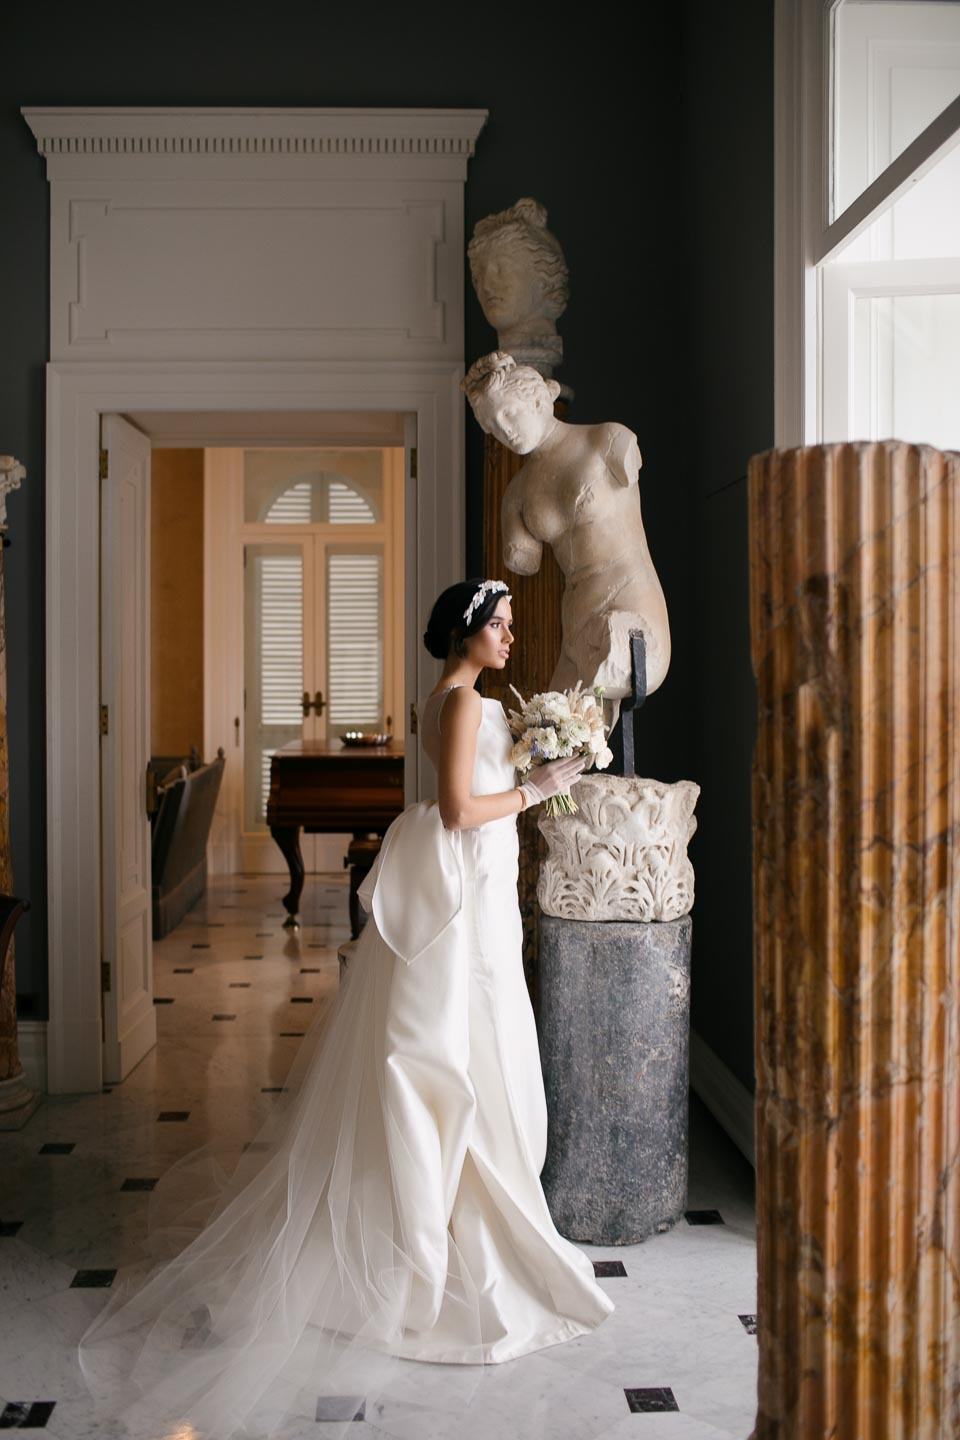 villa astor iconic destination amalfi coast italy unique location weddings elopement package private photo session